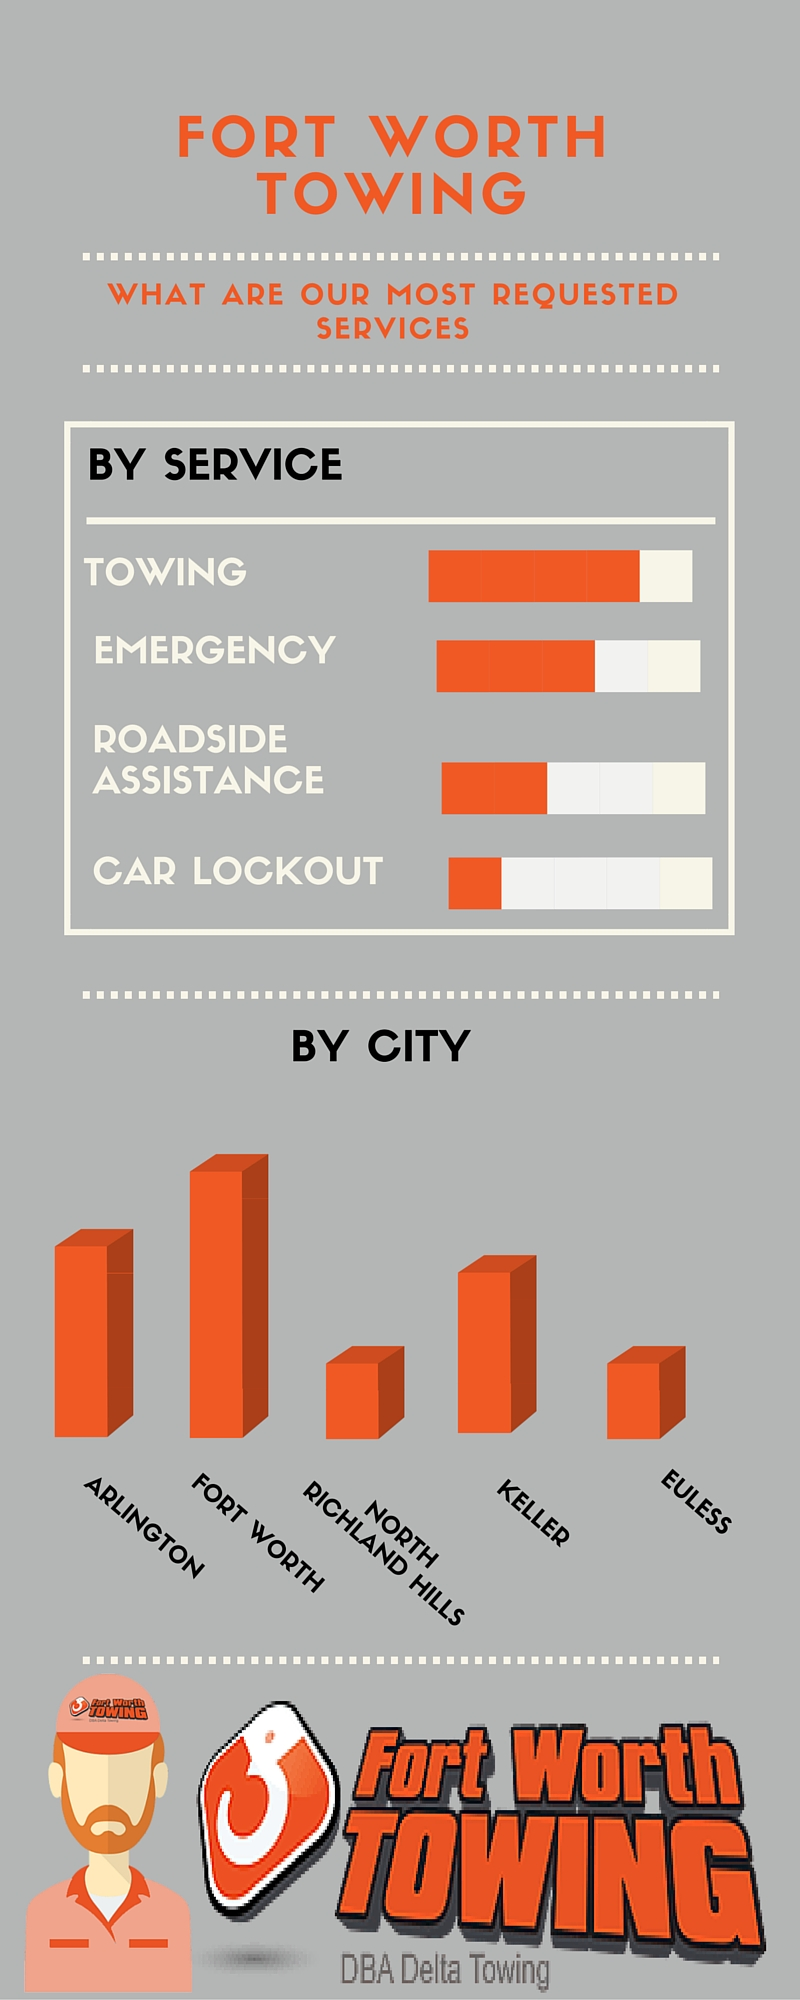 Fort Worth Towing Infographic